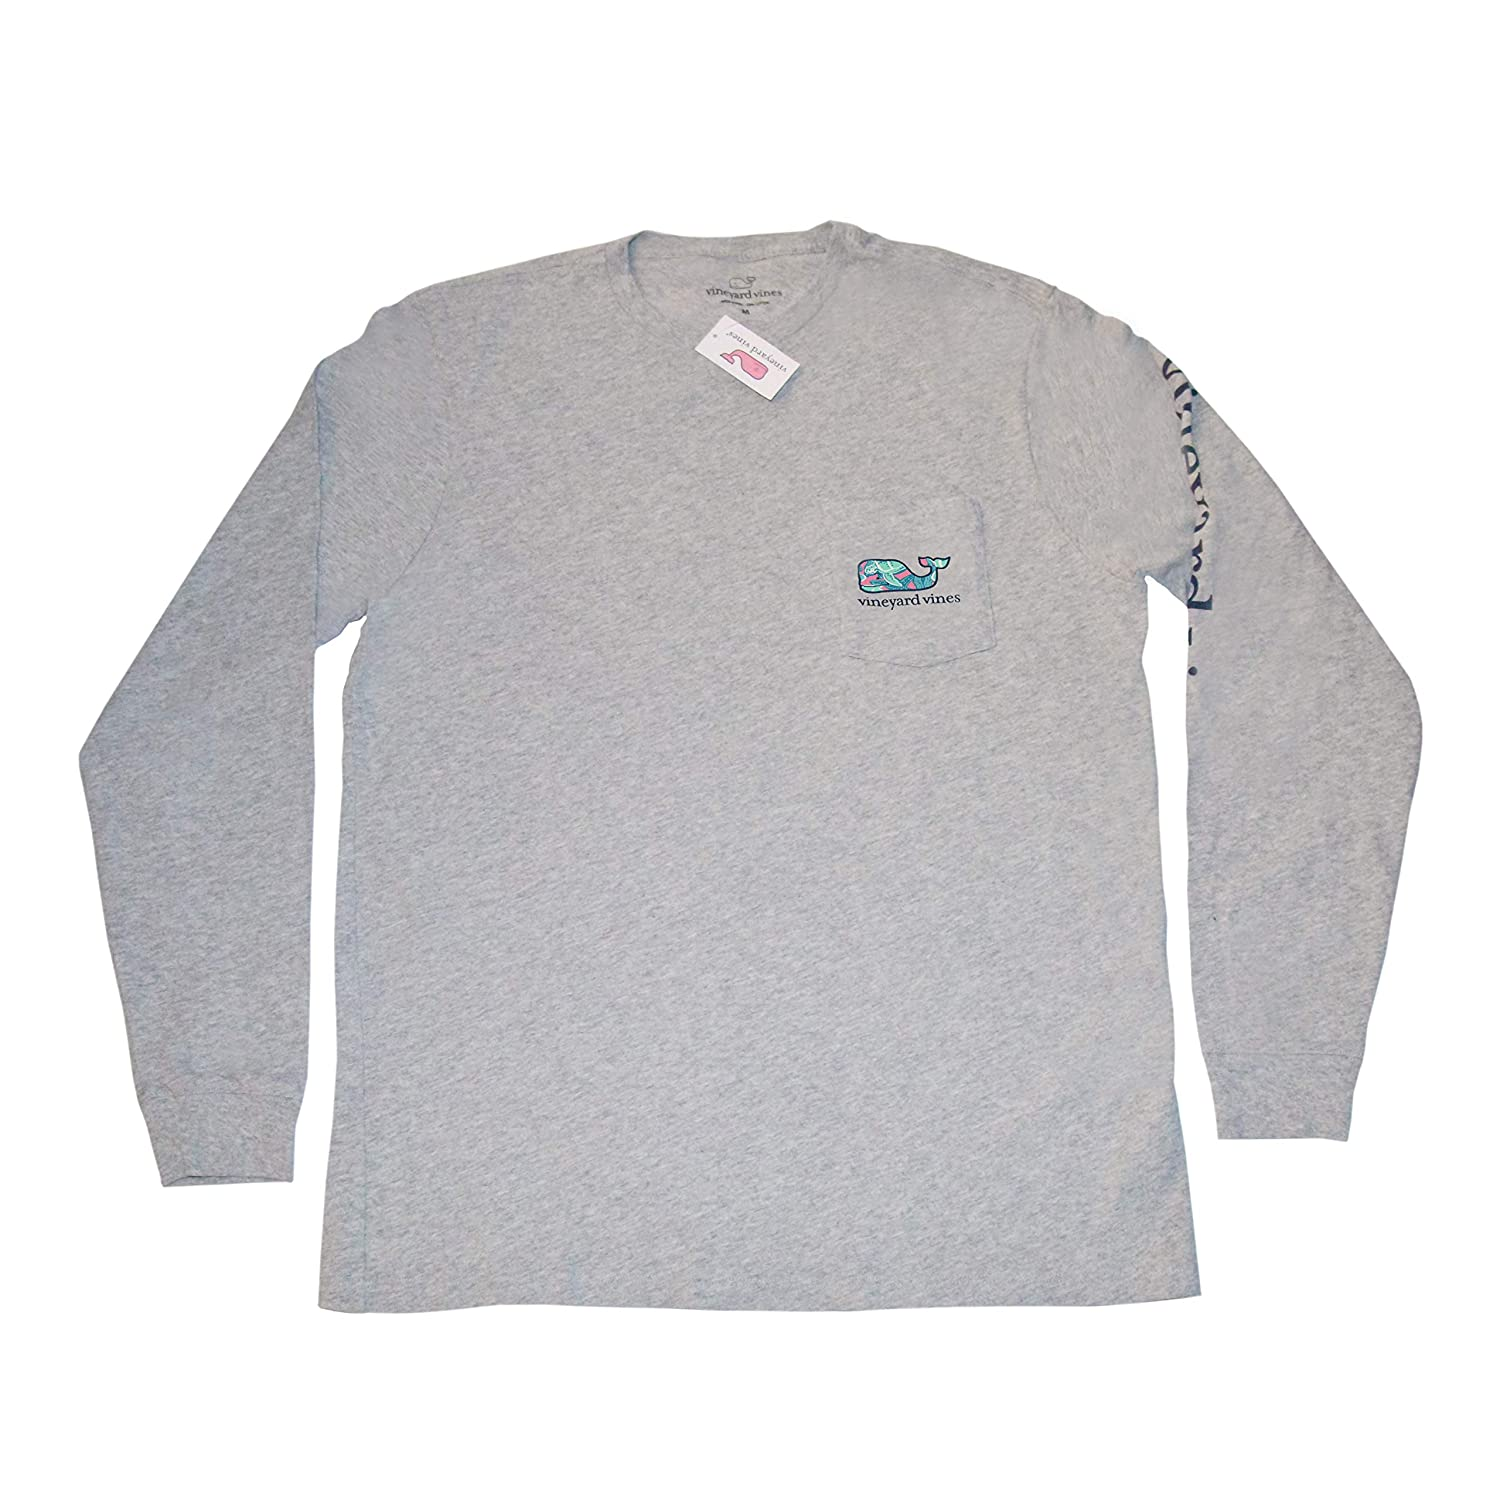 a12d5cba4 Amazon.com: Vineyard Vines Men's Graphic Long Sleeve Pocket T-Shirt Turtle  & Starfish Gray: Clothing